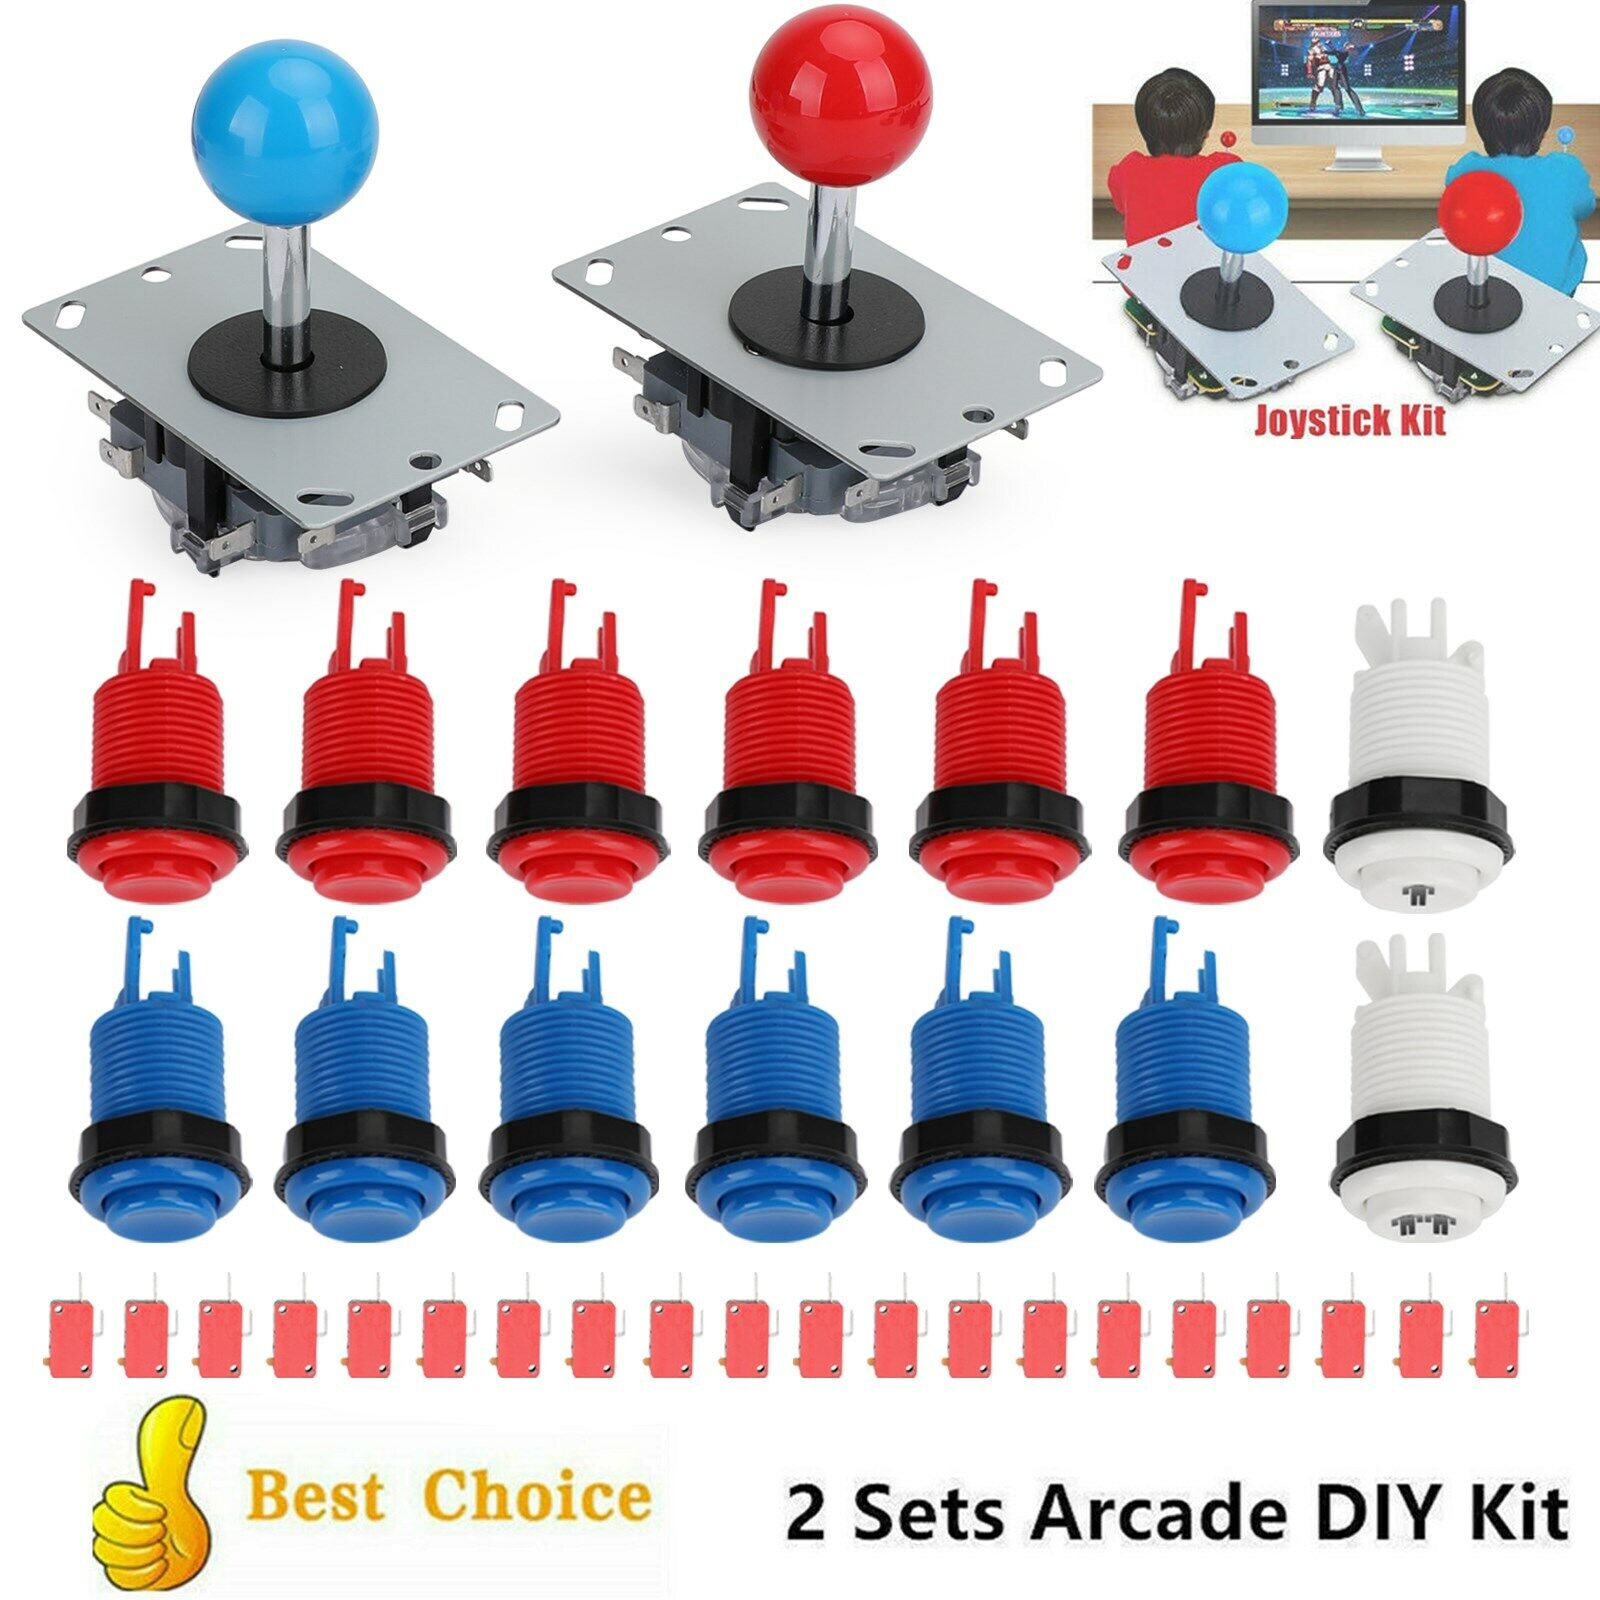 Joystick Push Button Start Button Micro Switch DIY Kit For Arcade Game 2 Player.